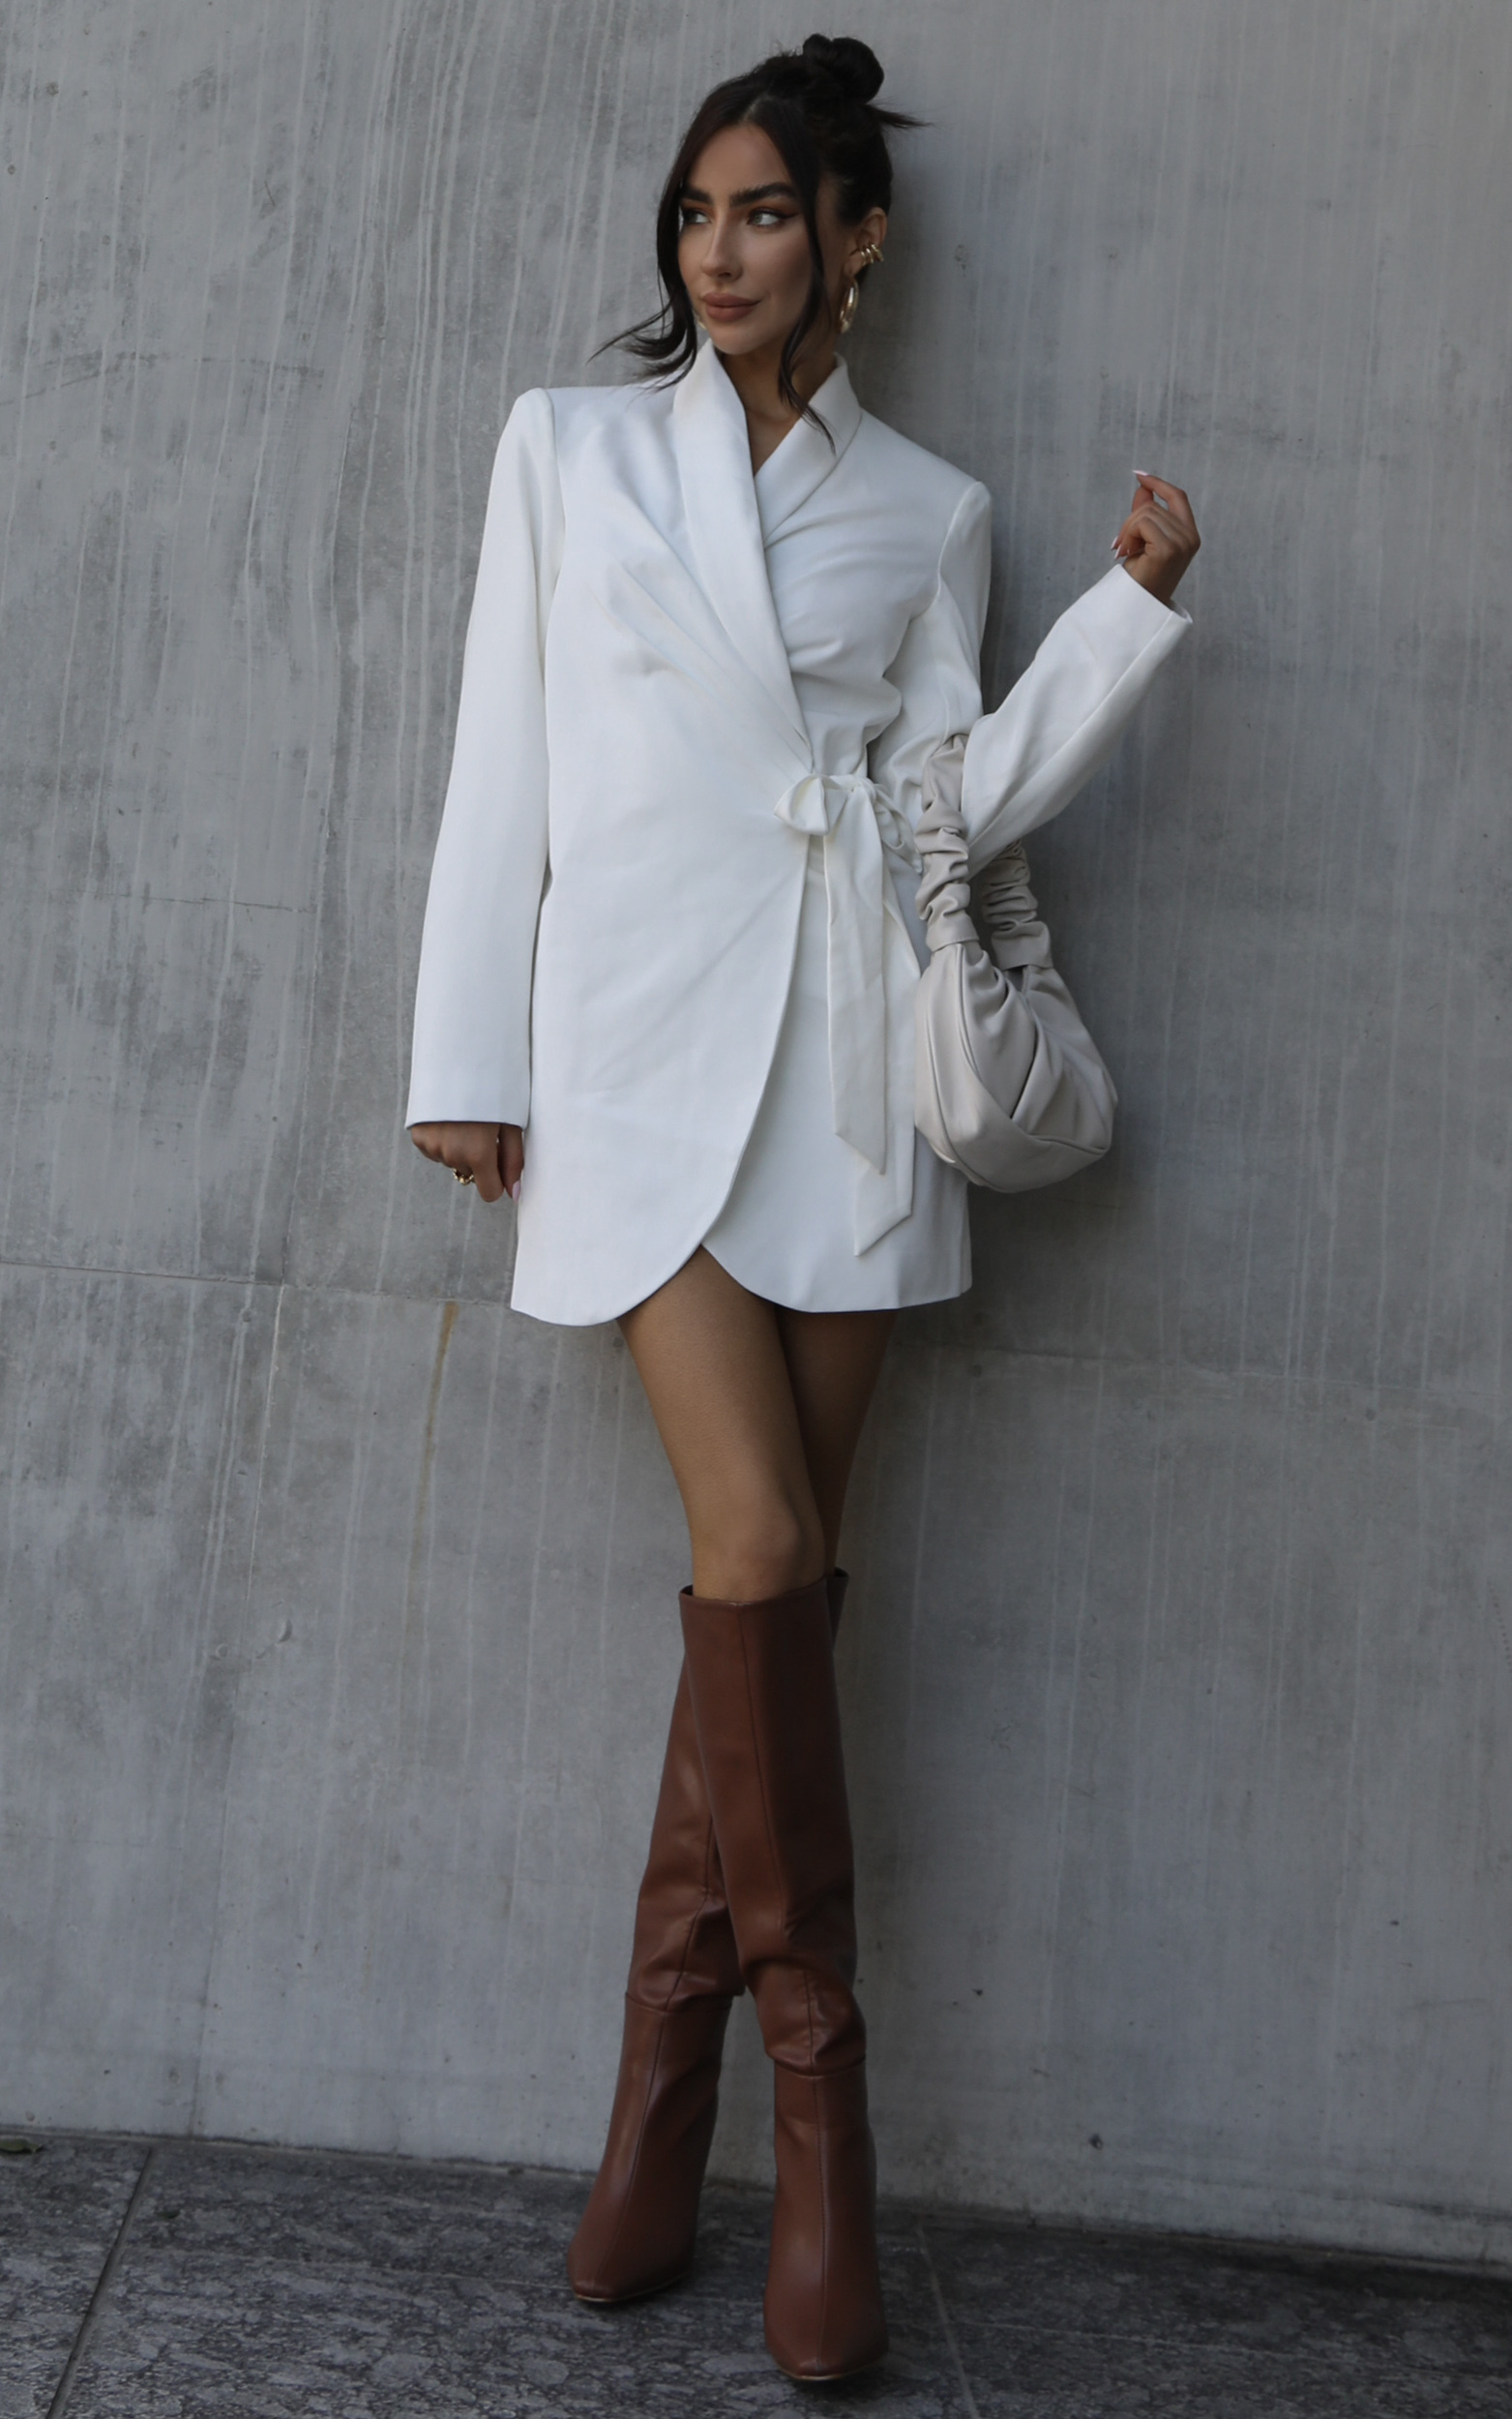 Rosia Wrap Style Blazer Dress in White - 04, WHT2, hi-res image number null